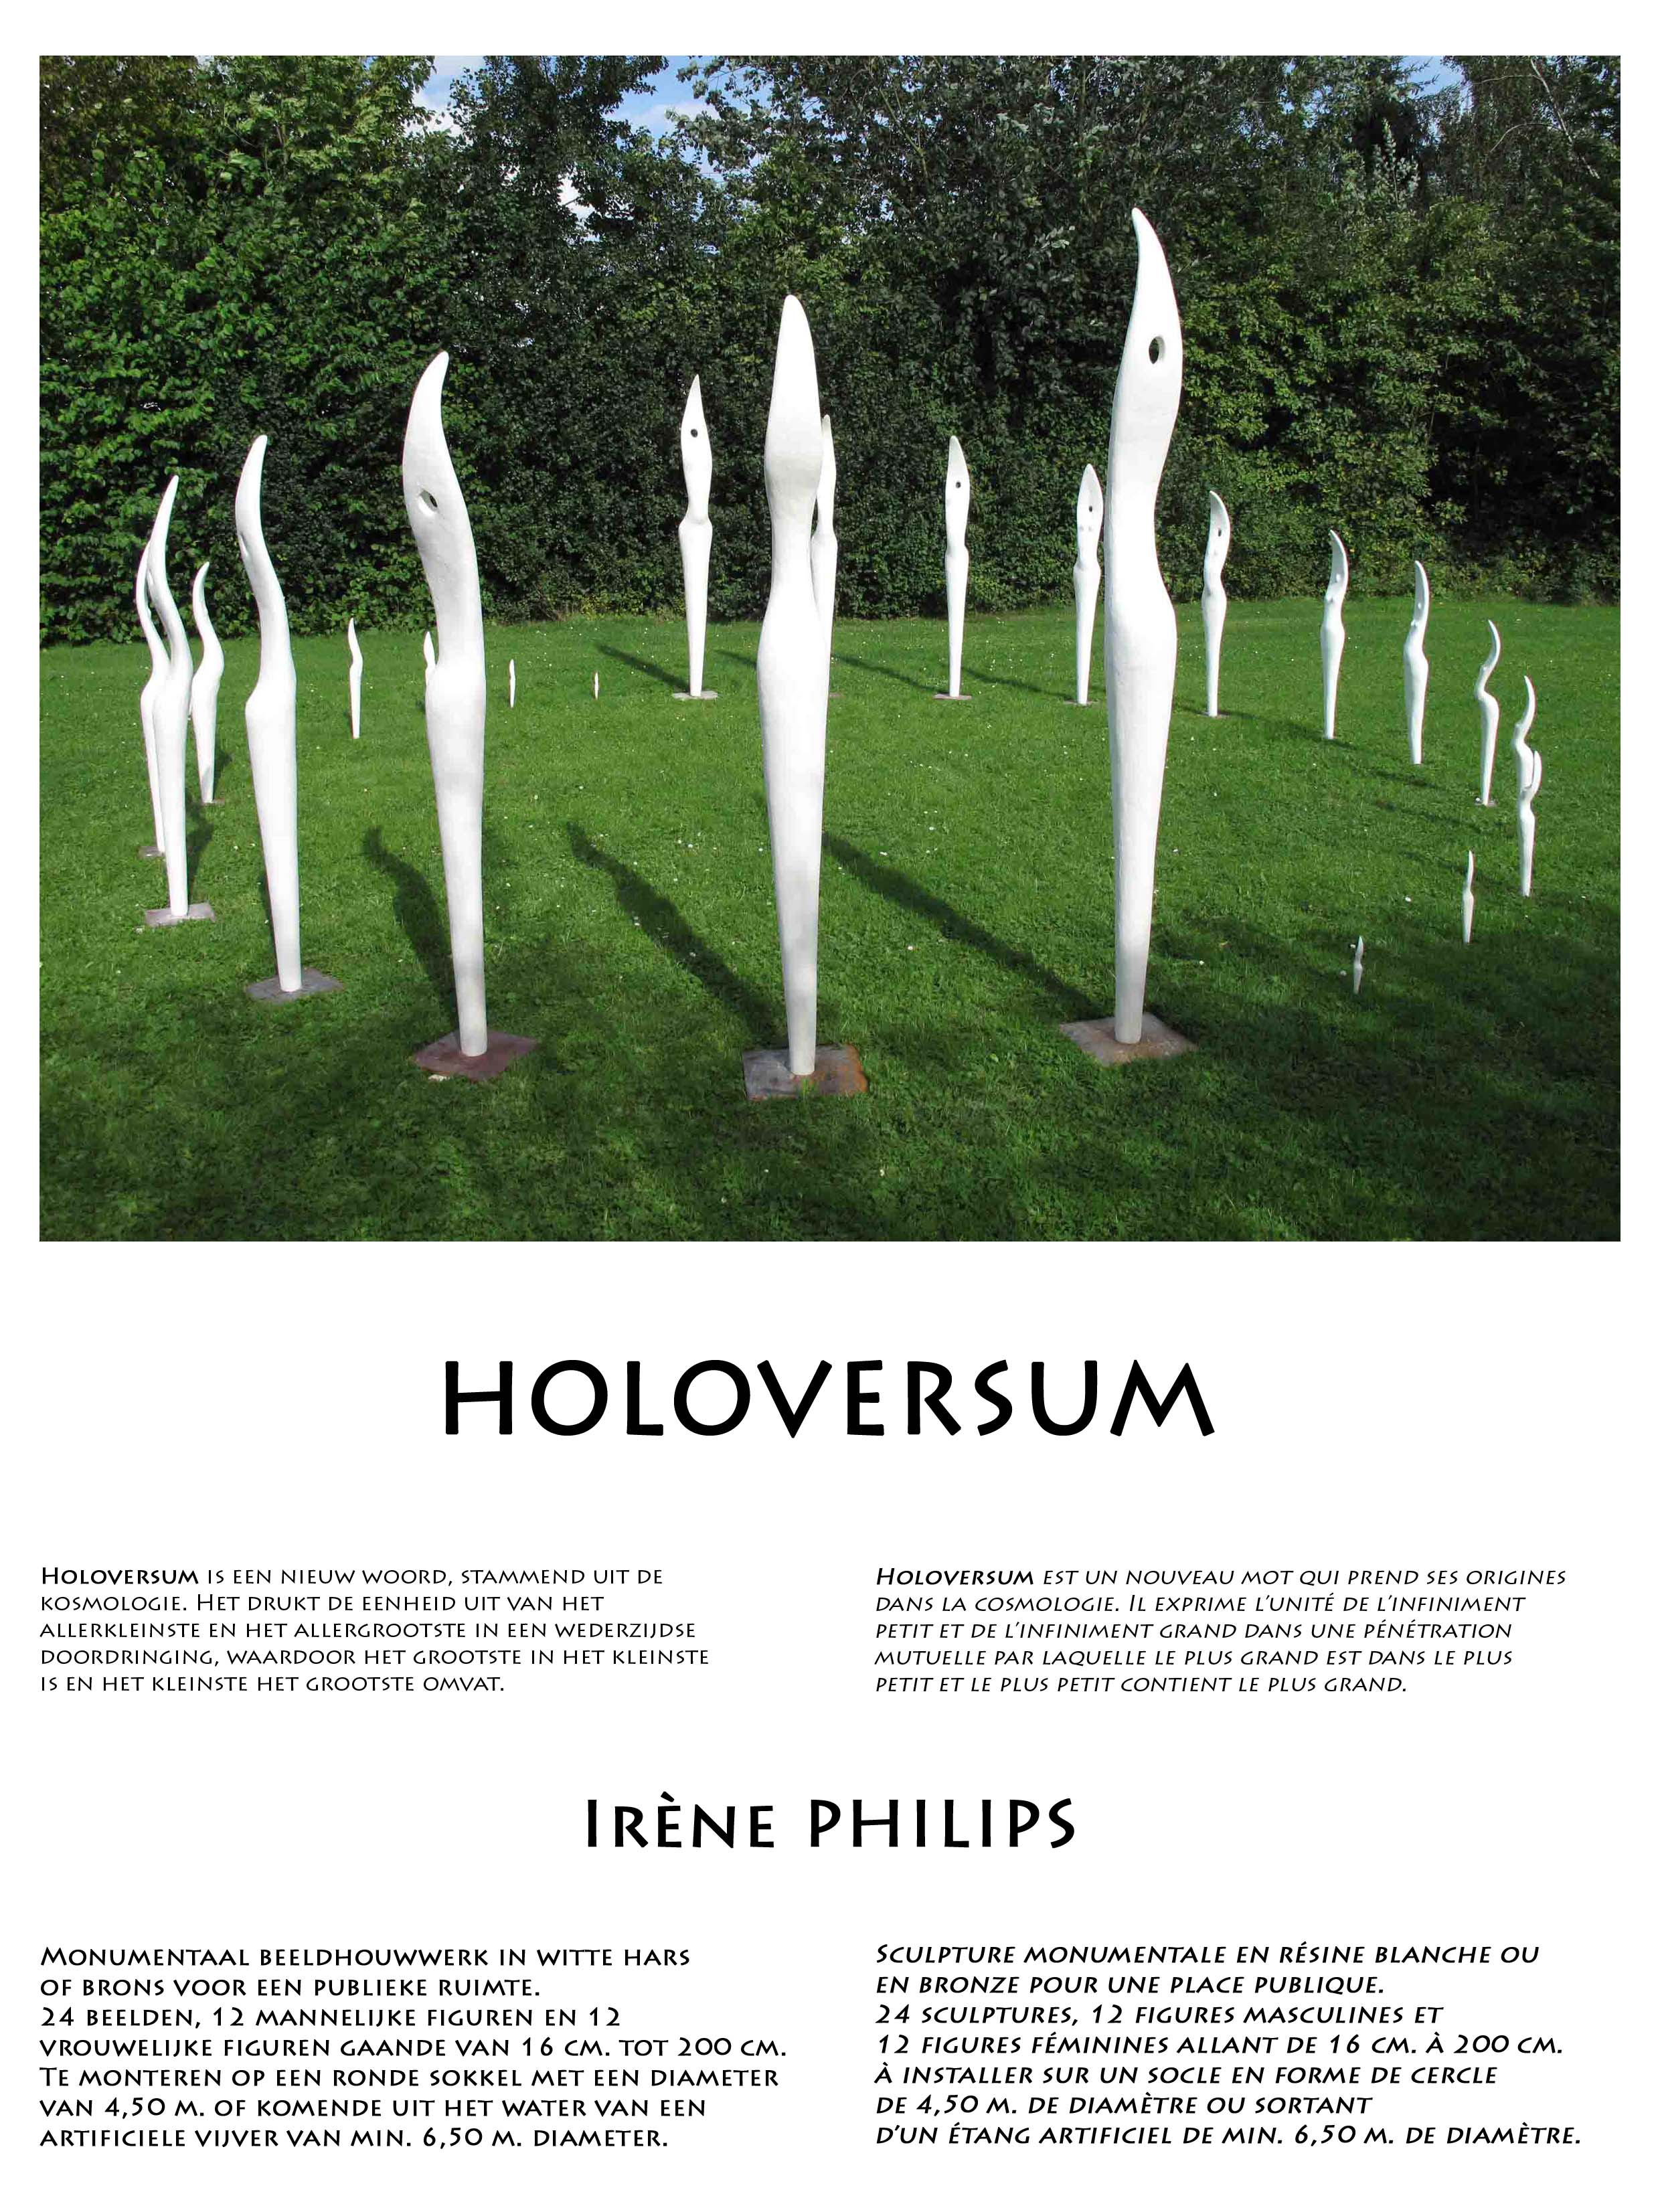 HOLOVERSUM, Irène PHILIPS